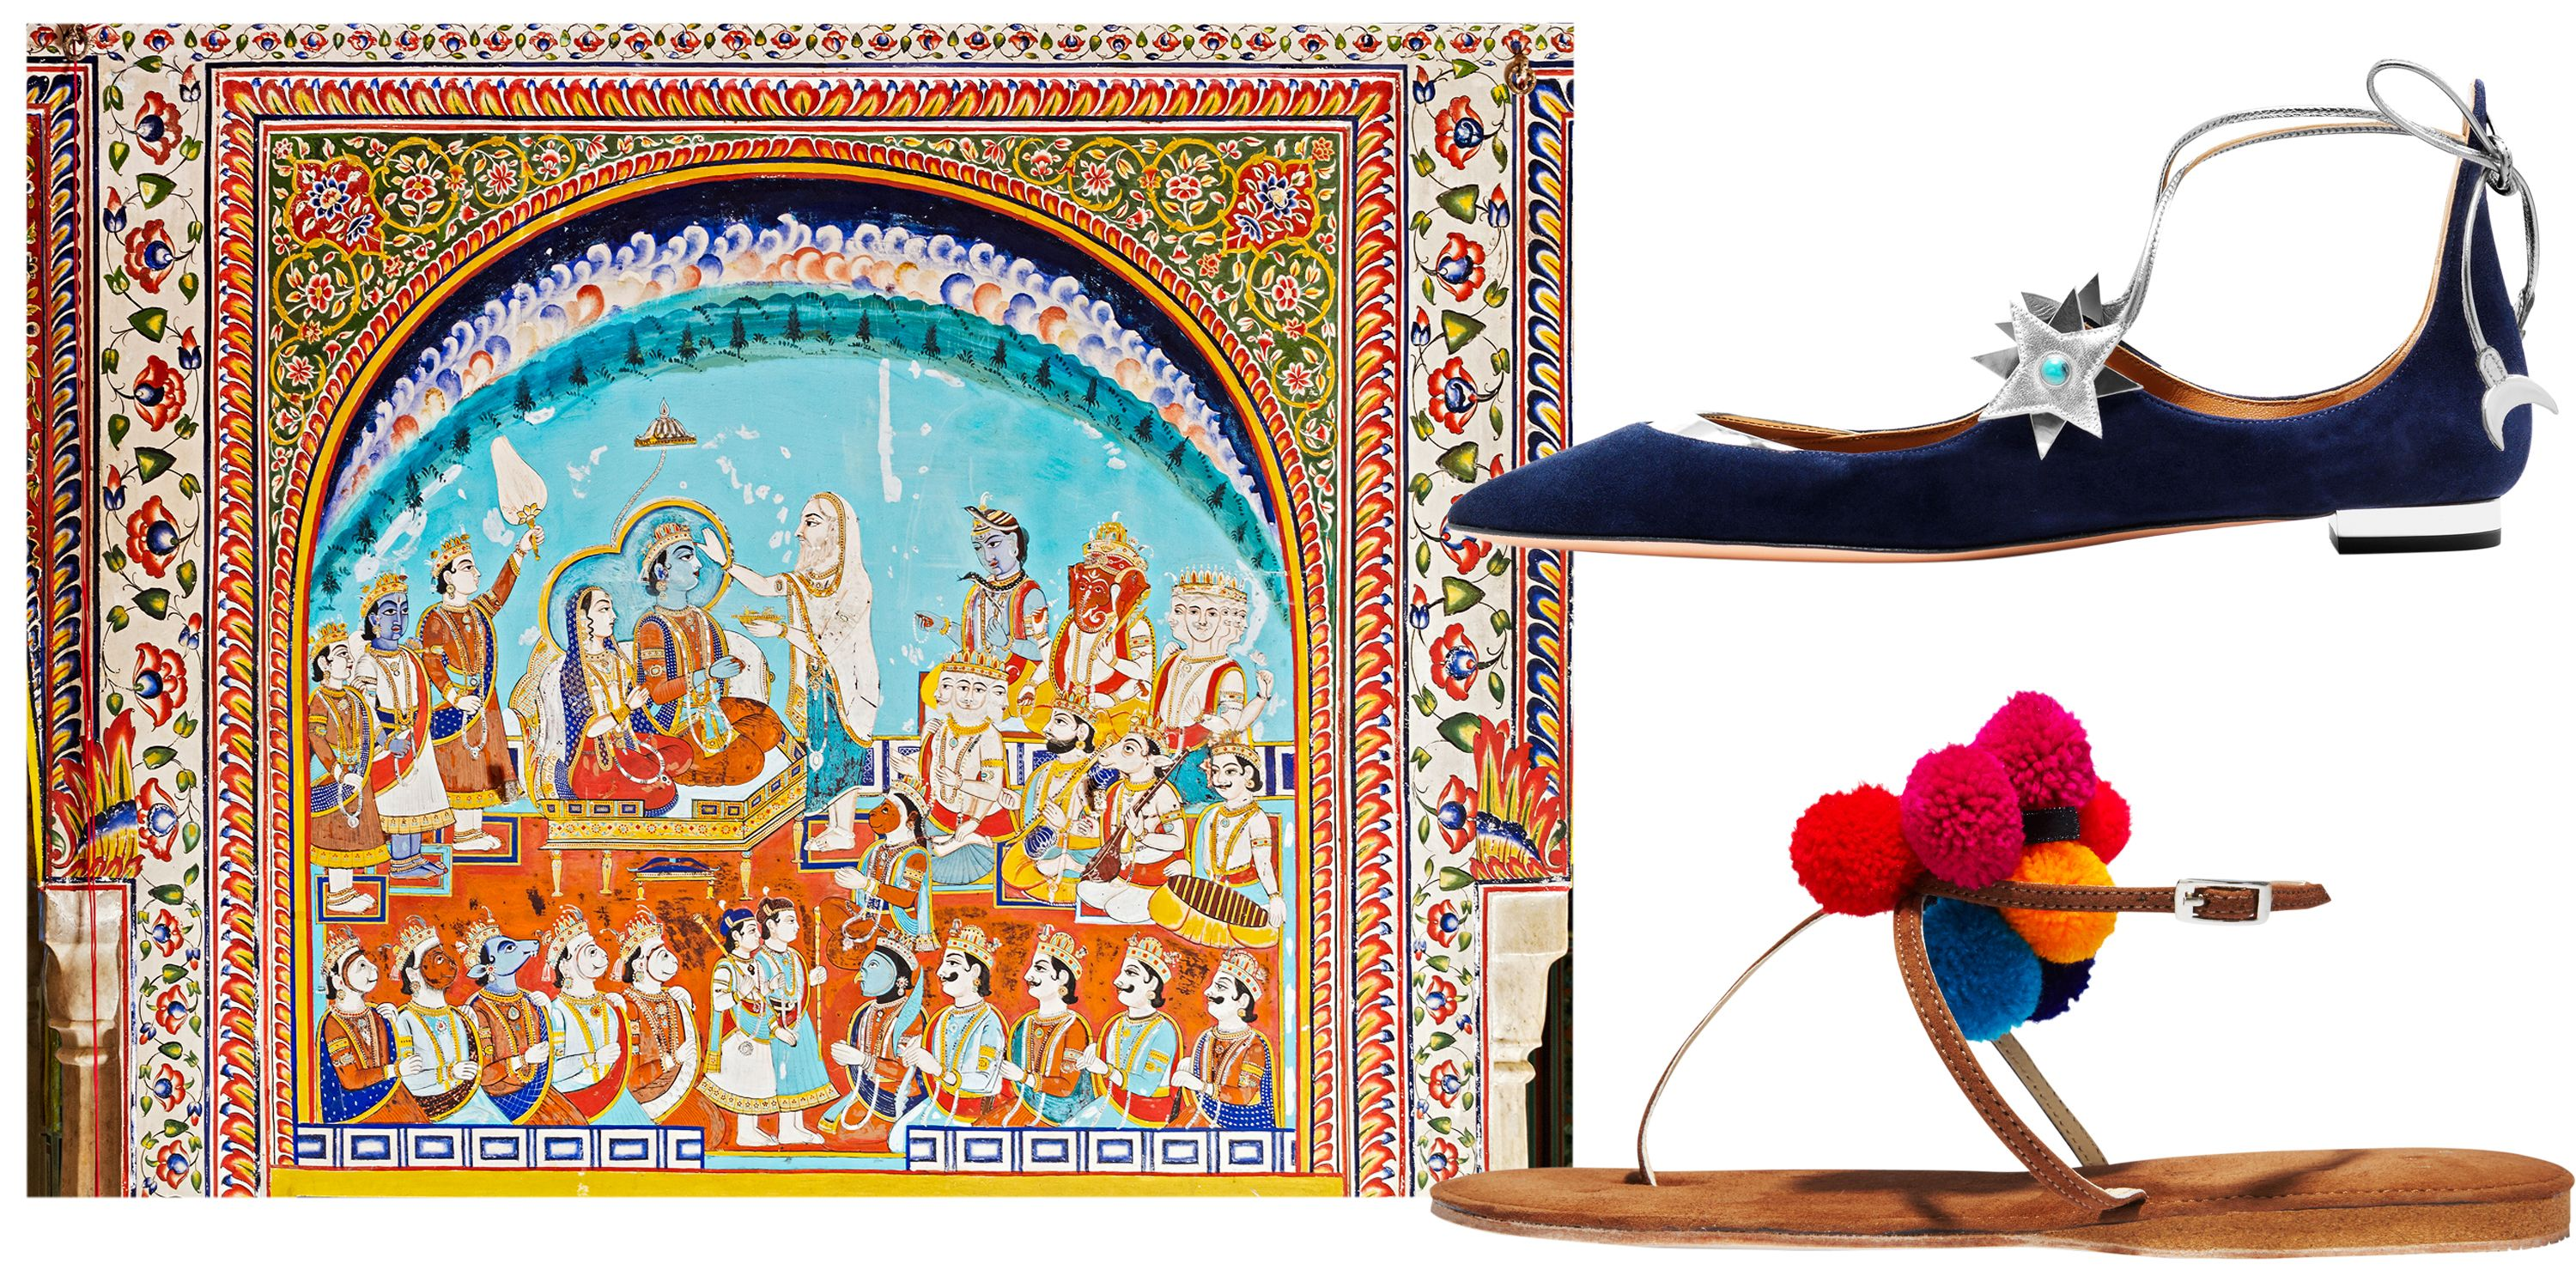 "<p>""Debonnaire suede sandals for a day trip to see the wall paintings at Samode Palace in Jaipur, and Aquazzura x Poppy Delevingne shoes for a dinner at Umaid Bhawan Palace in Jodhpur.""</p><p>Murals at Samode Palace; <strong>Aquazzura</strong> shoes, $595, 877-551-7257; <strong>Debonnaire</strong> sandals, $135, <a href=""http://www.debonnaire.com/"" target=""_blank"">debonnaire.com</a>. </p>"